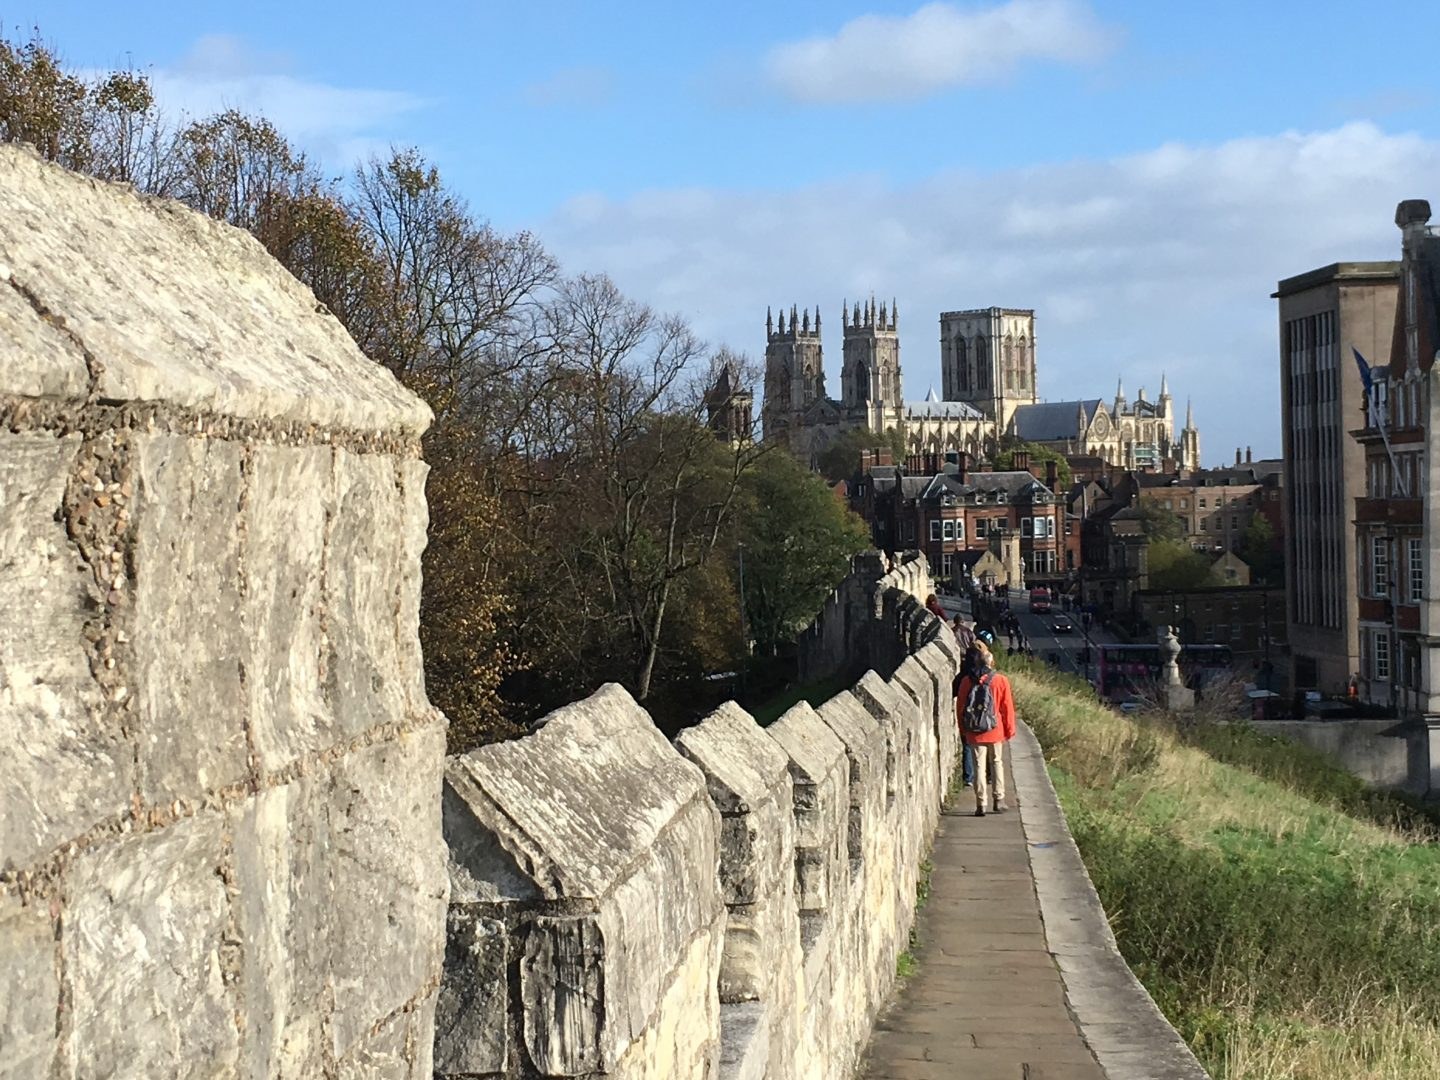 City walls of York